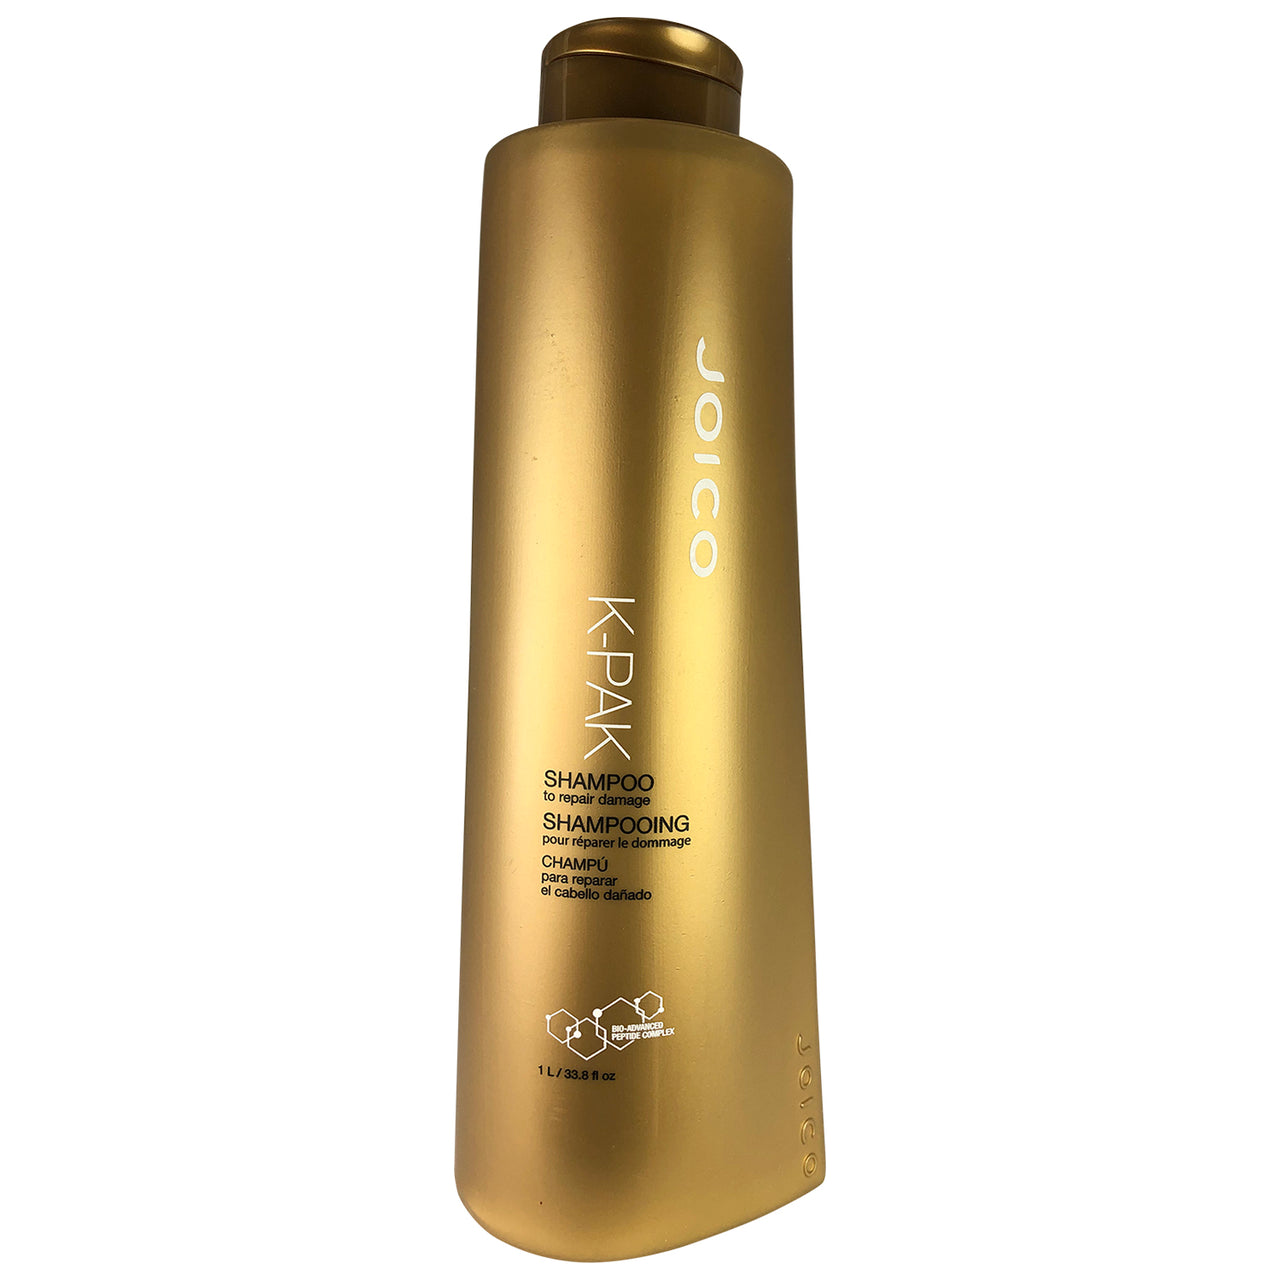 Joico K-Pak Shampoo Repairs Damaged Hair 33.8 oz